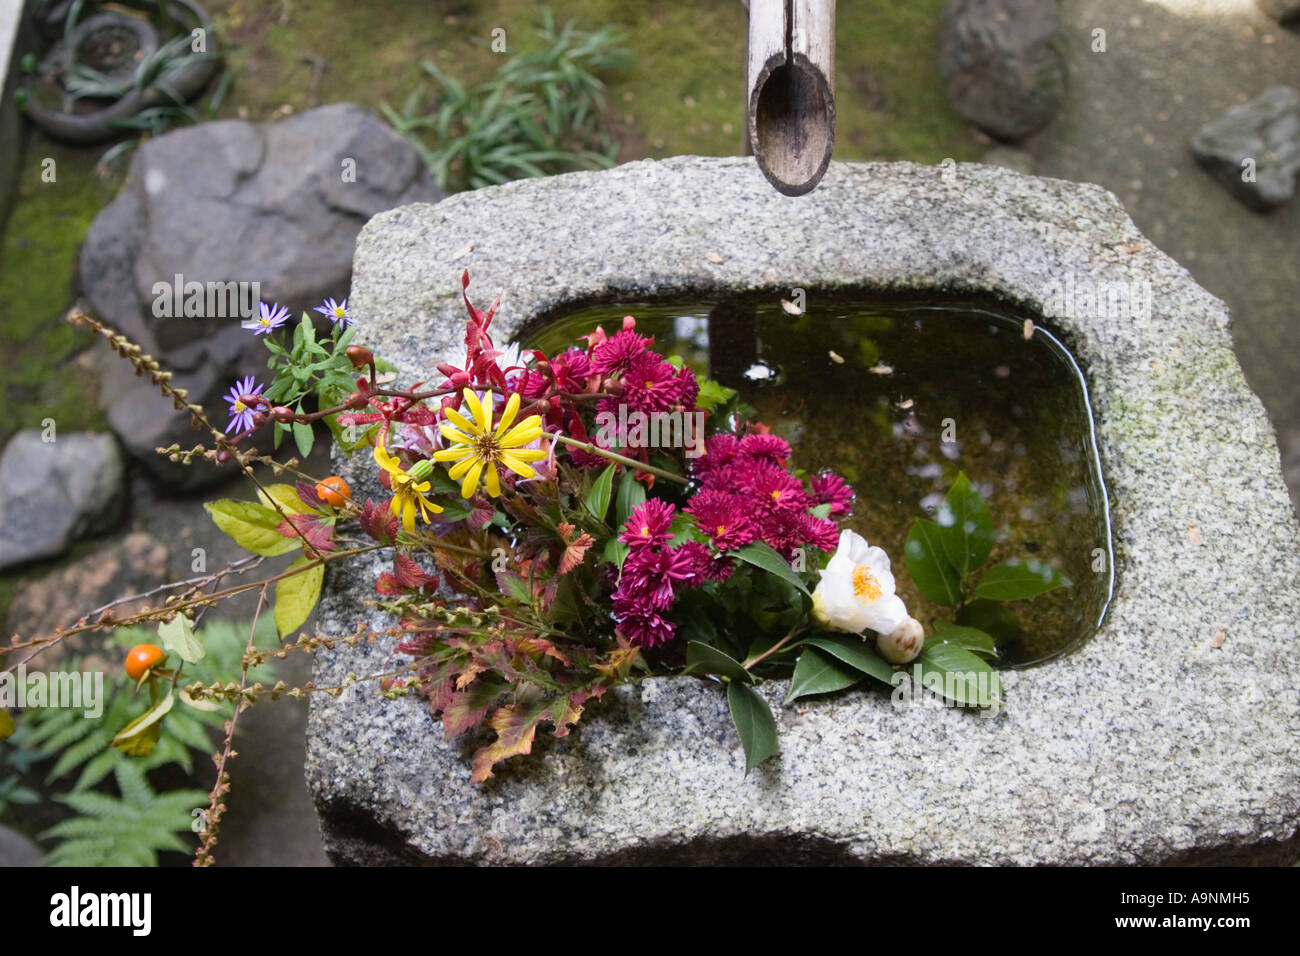 Purification fountain 'tsukubai' at the garden at Korin-in, which is a subtemple of Daitokuji Temple, Kyoto, Japan - Stock Image